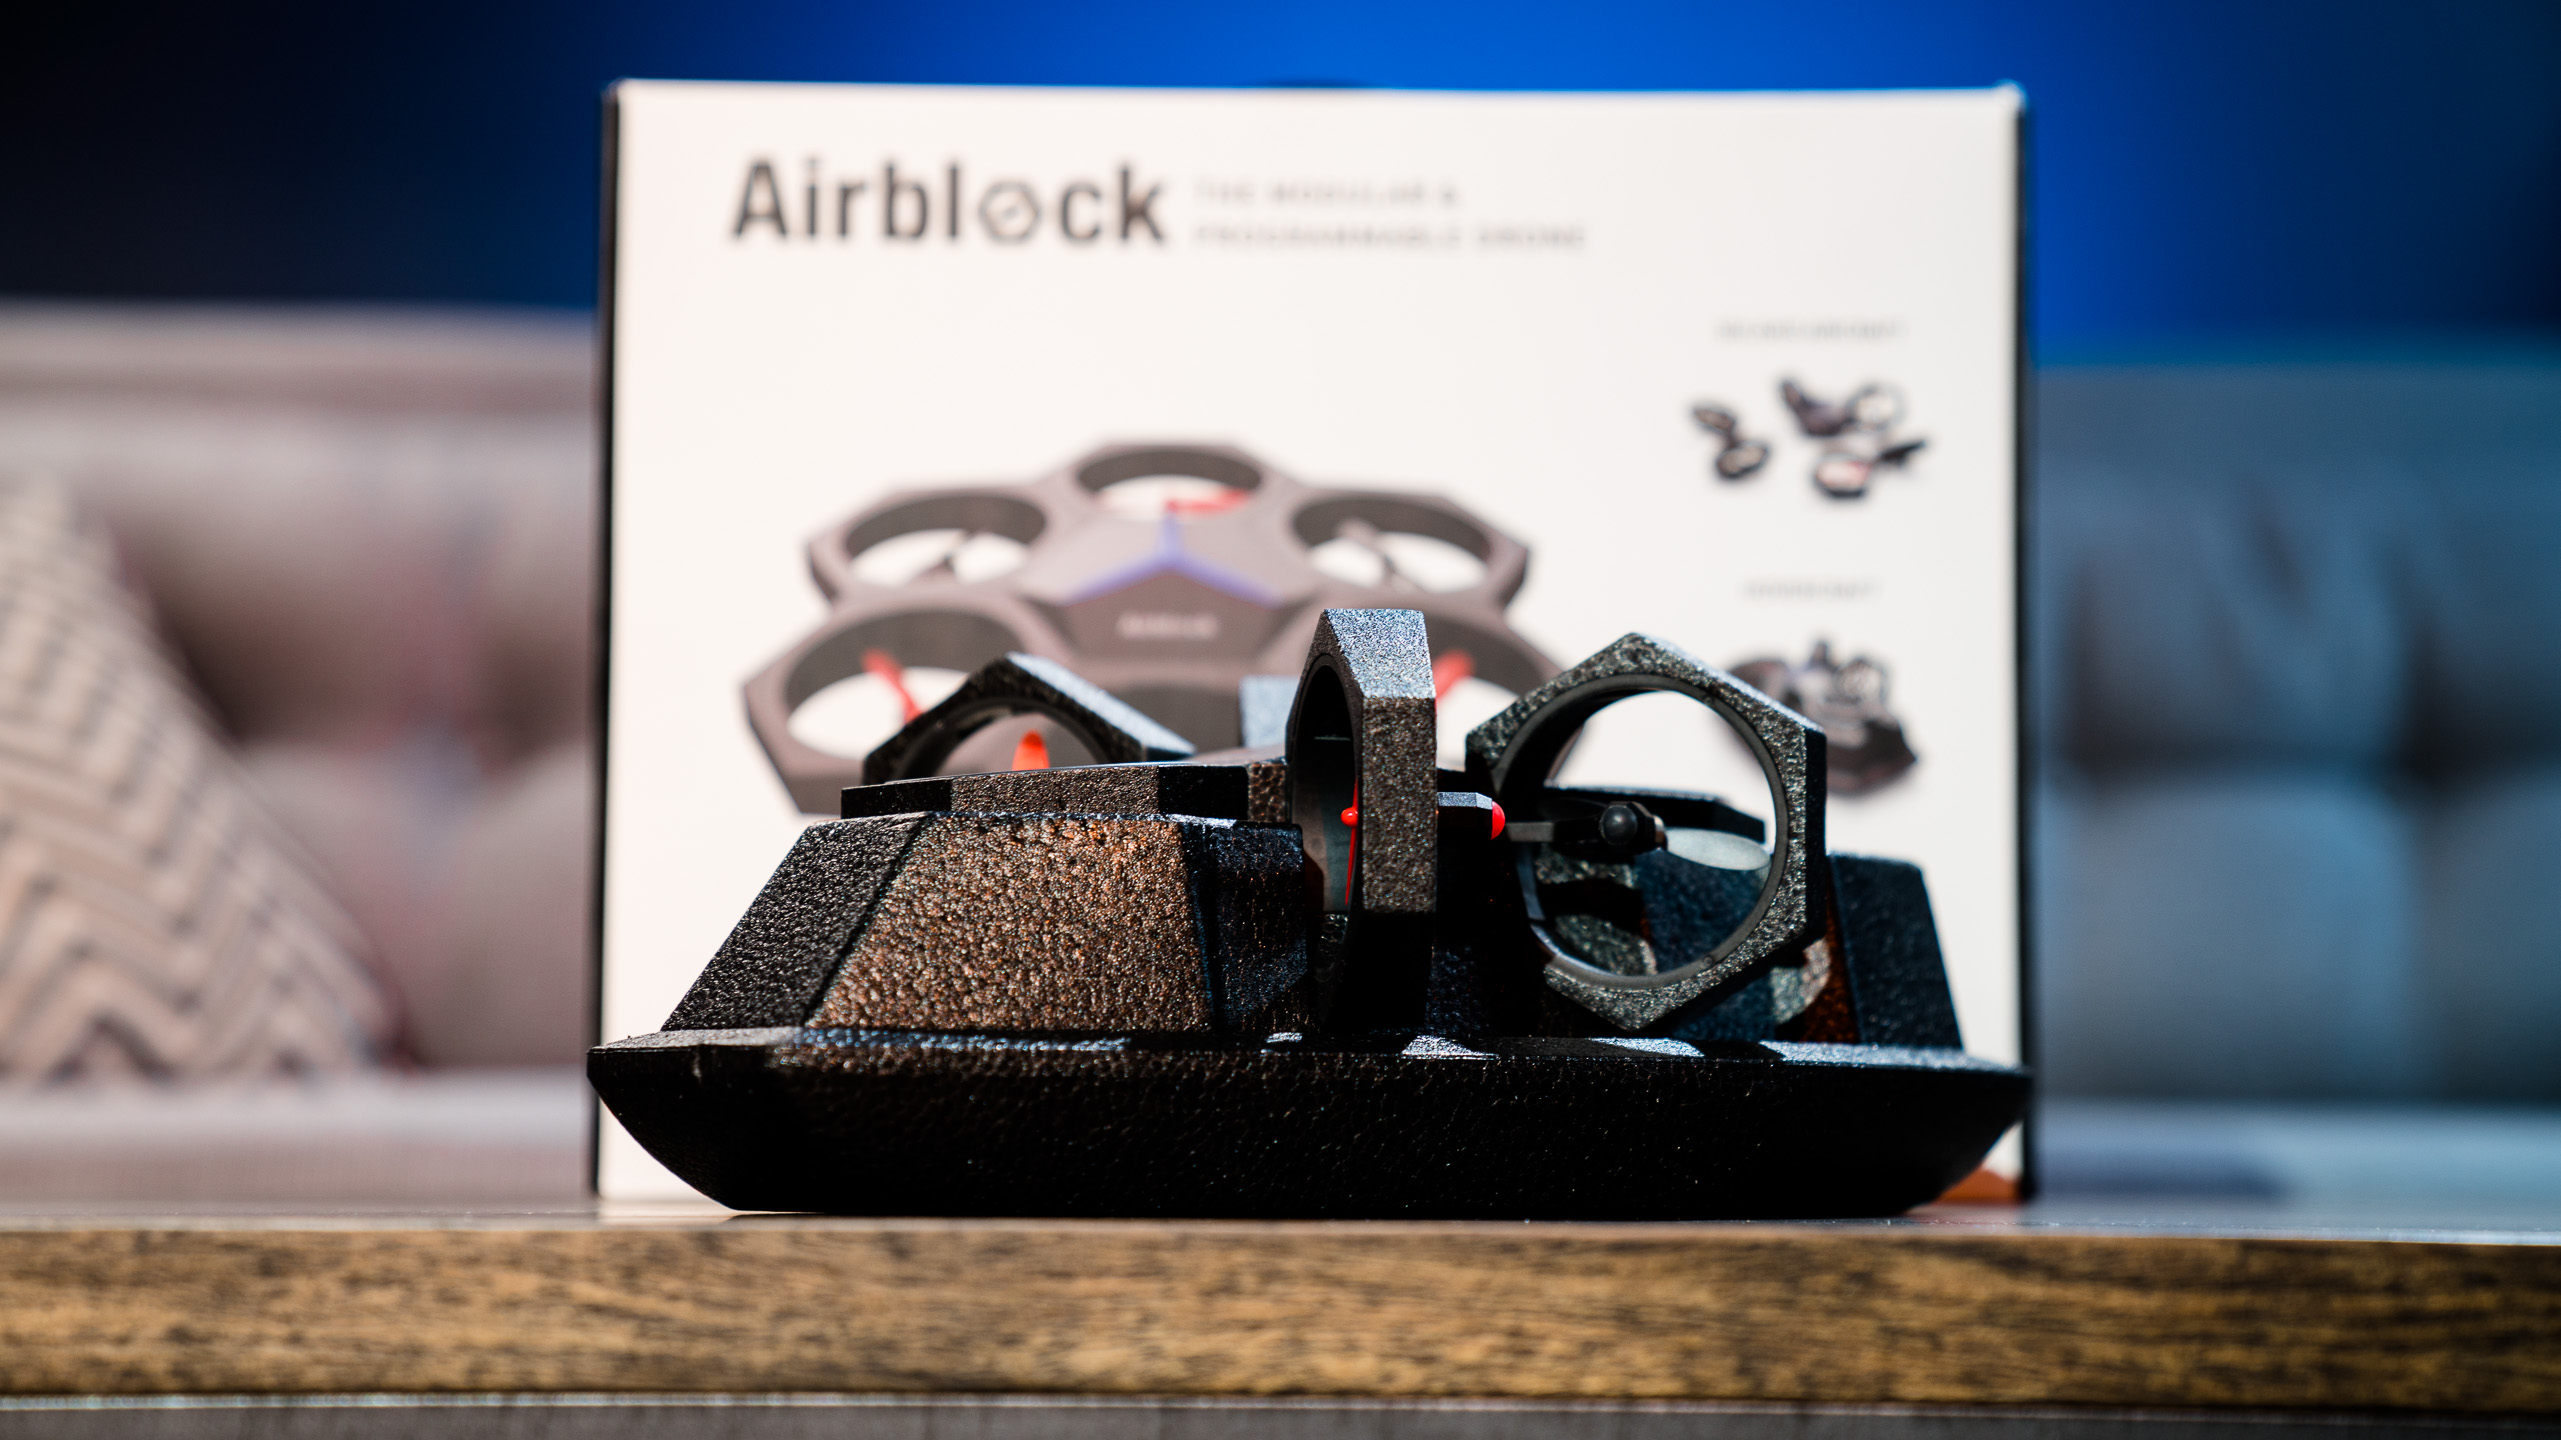 The transformation of Airblock doesn't stop at just the forms designed by Makeblock, Legos and other creation toys can be used to build unique forms.